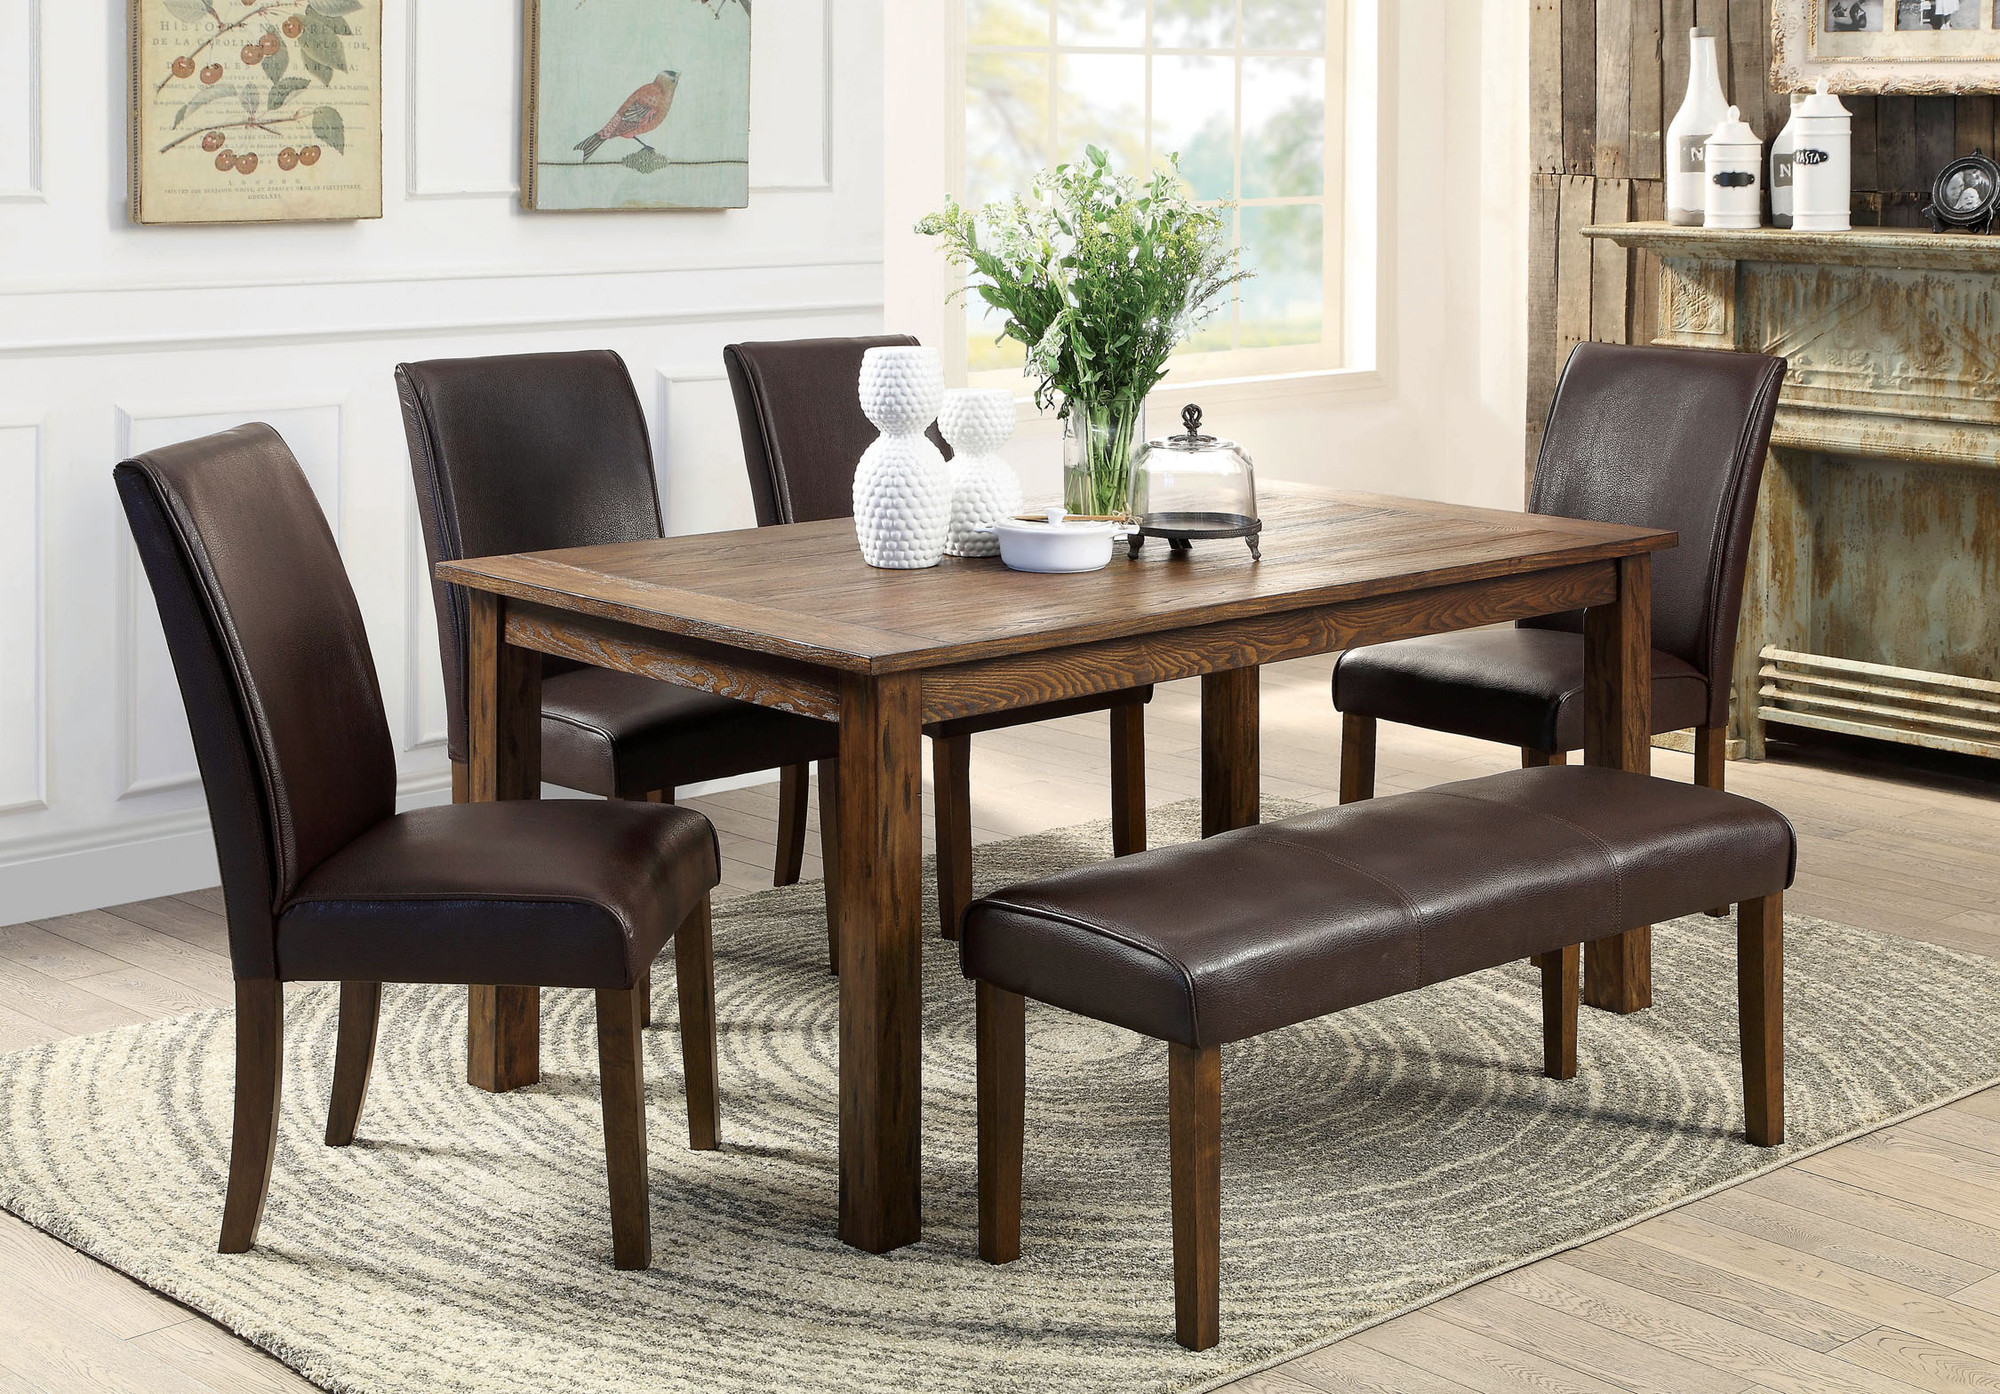 rectangular dining tables for small spaces small rectangular dining table homesfeed for various dining room benches NFIEZWB